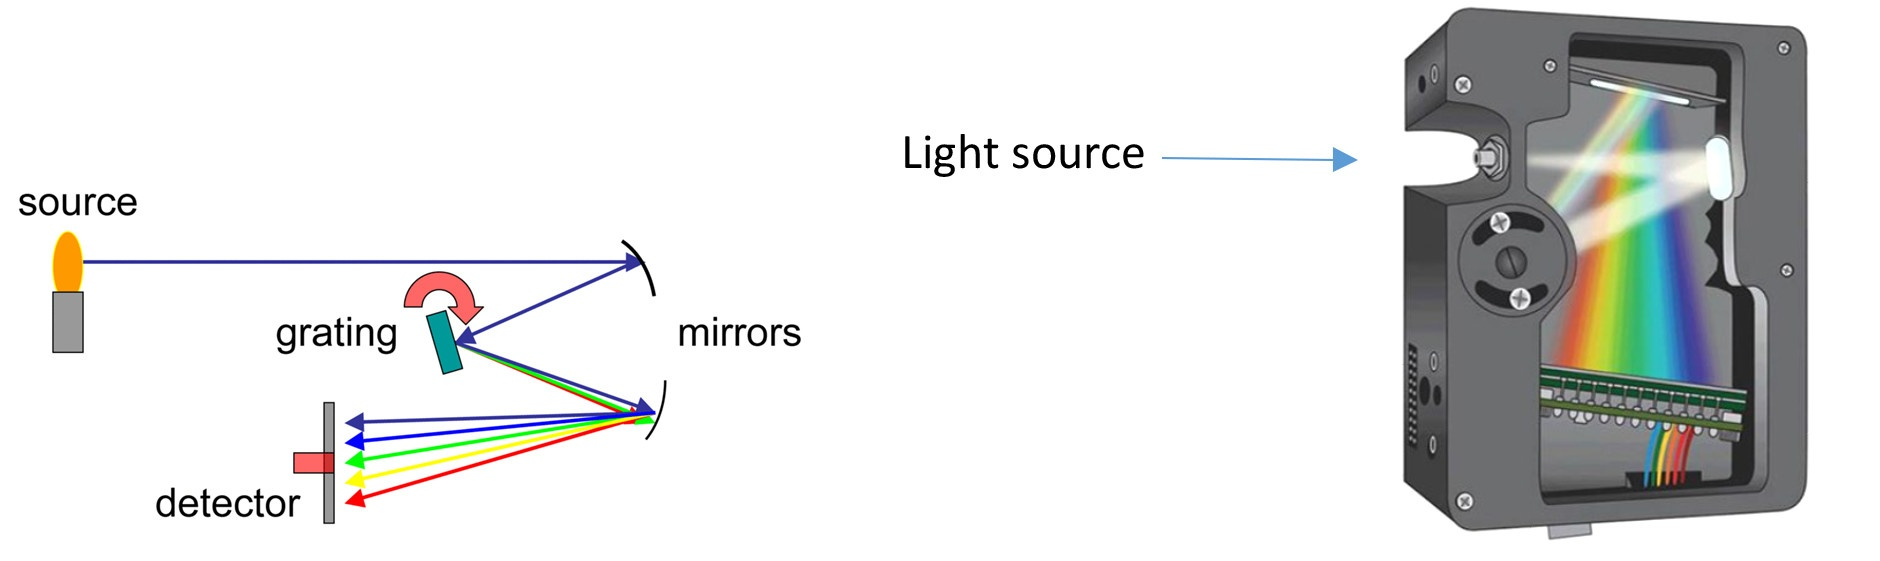 A Simple Experiment To Analyze Light Sources How Make Activated Day Night Switch Circuit Science This Is Pre Calibrated For Absolute Irradiance In The Units Of Microwatts Per Square Centimeter W Cm 2 Nm 1 At Each Wavelength